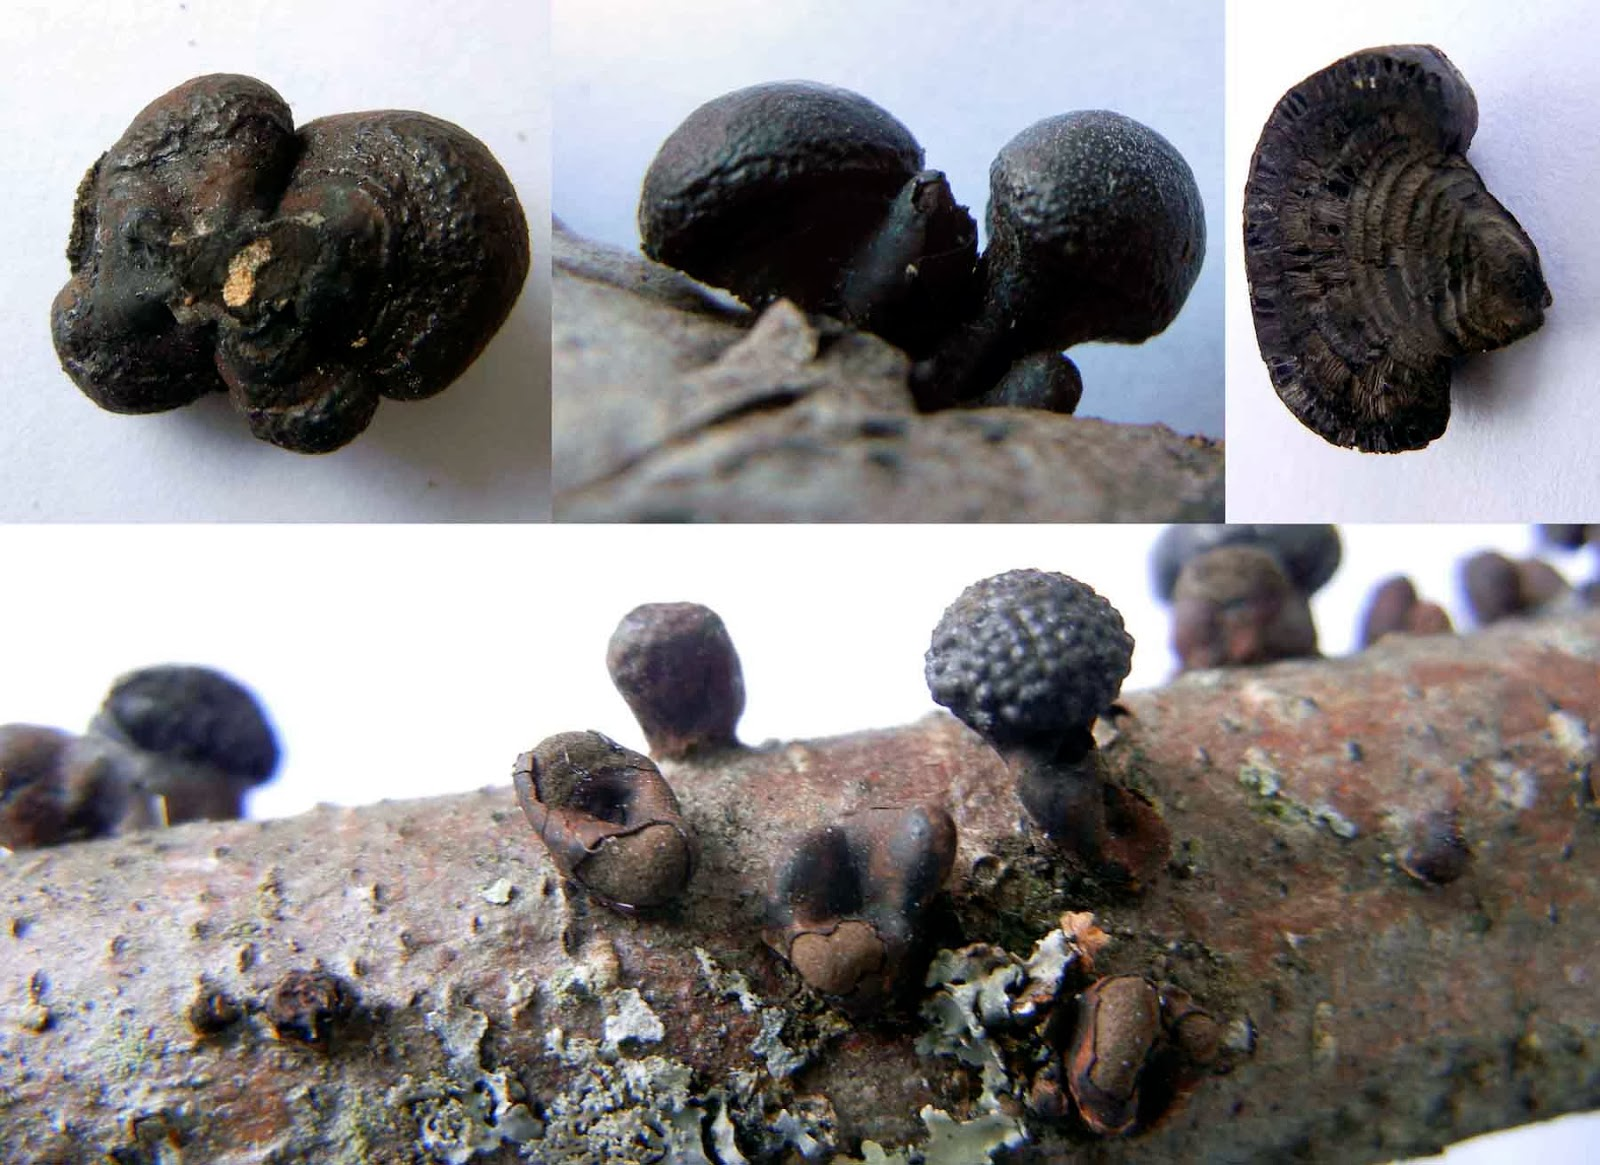 Close-up views of stalked Daldinia